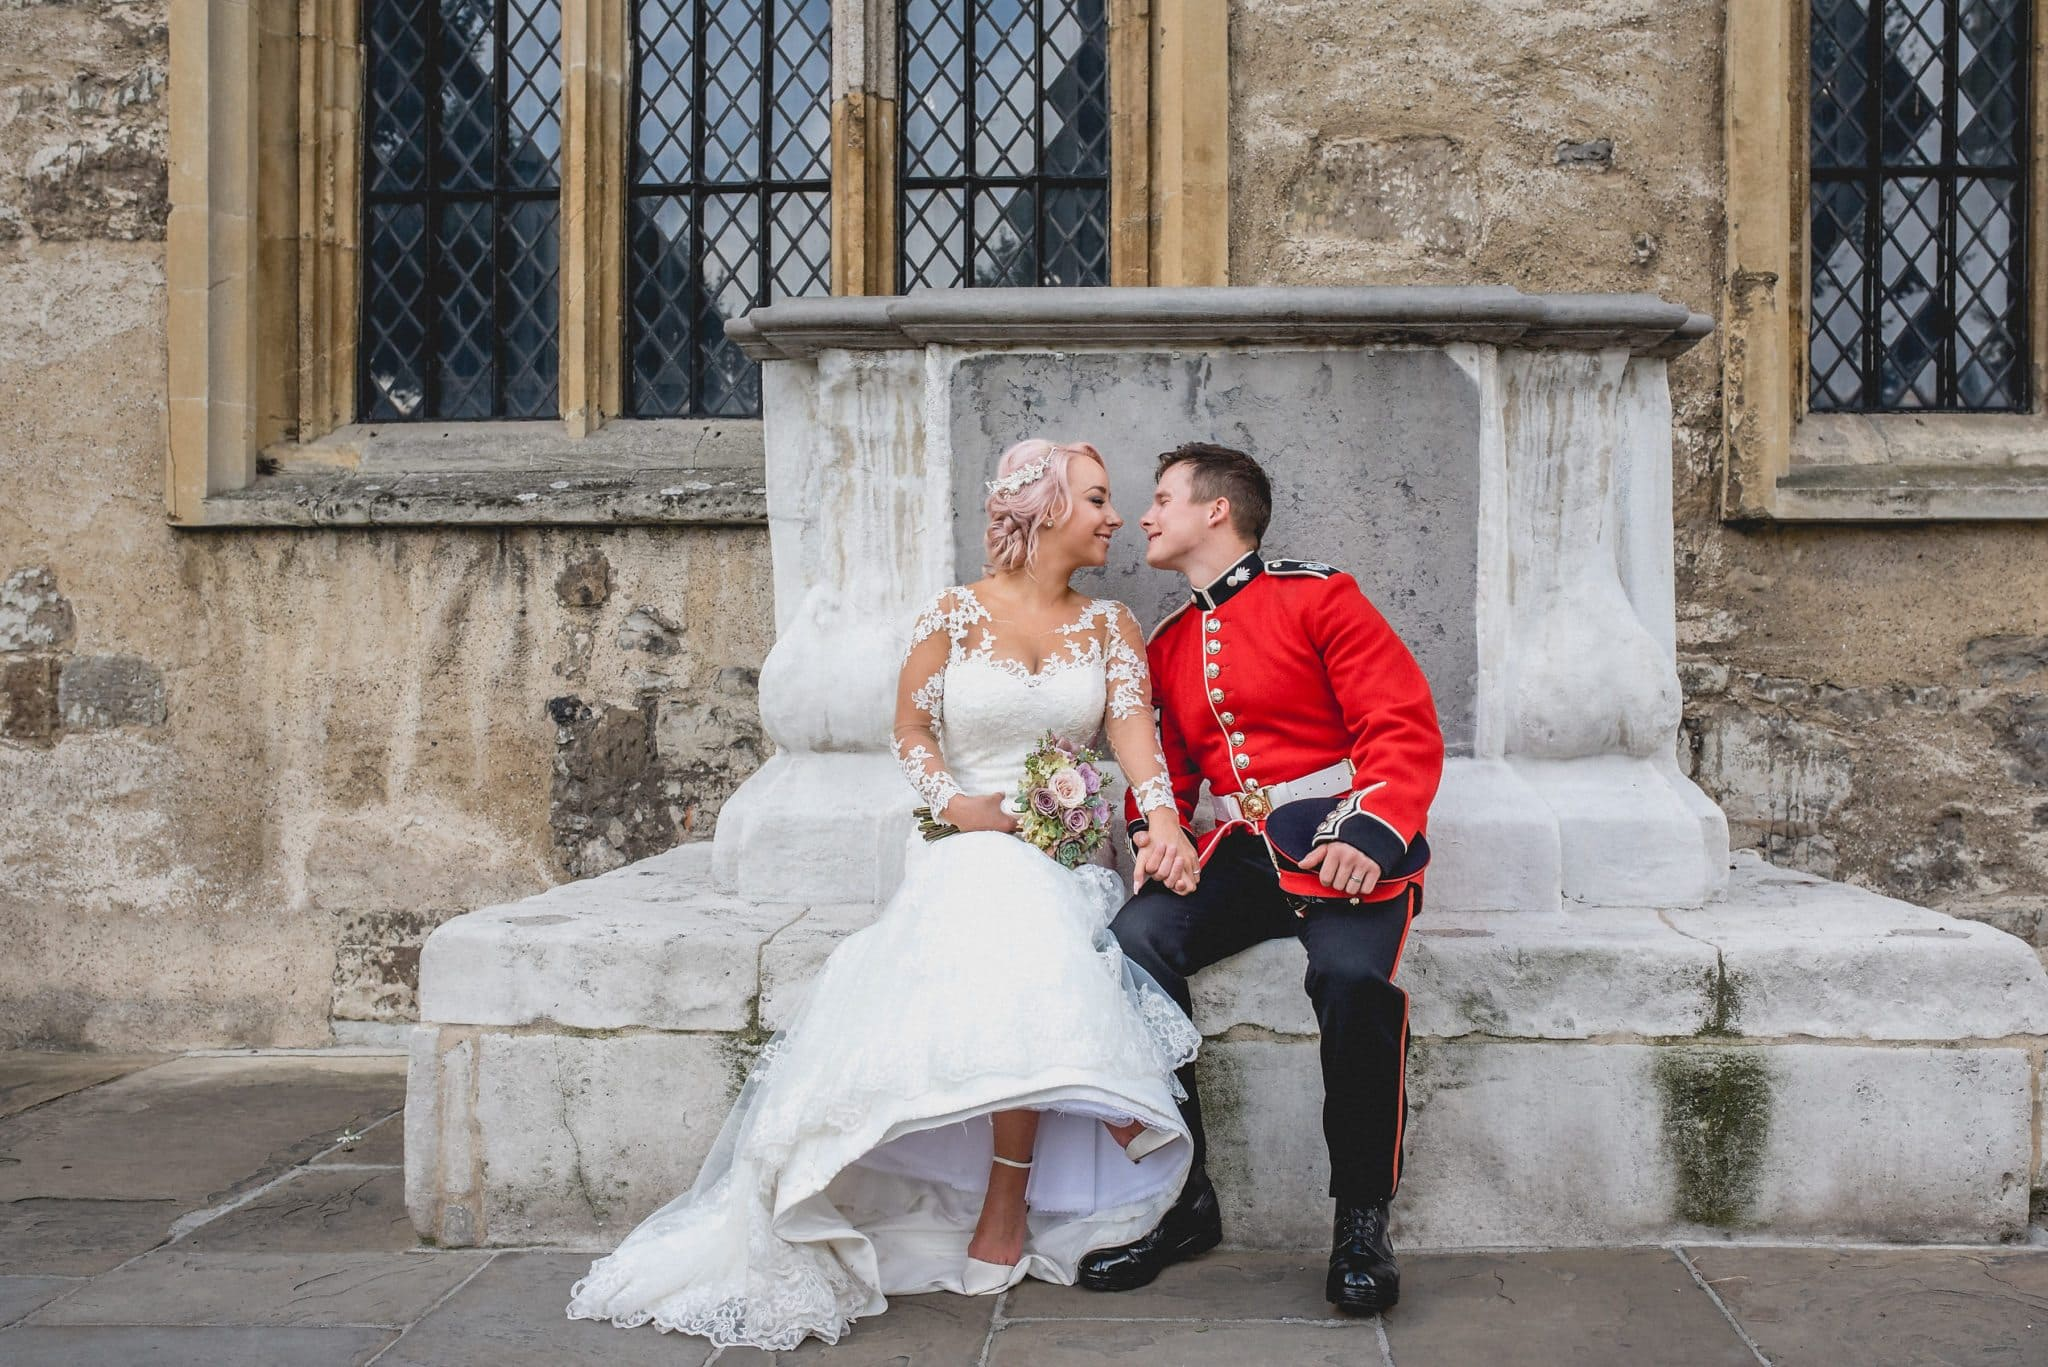 Couple shot of bride and groom outside Tower of London. Groom wears Royal Guard red dress uniform, bride has pale pink hair and wears a dress with illusion lace sleeves.